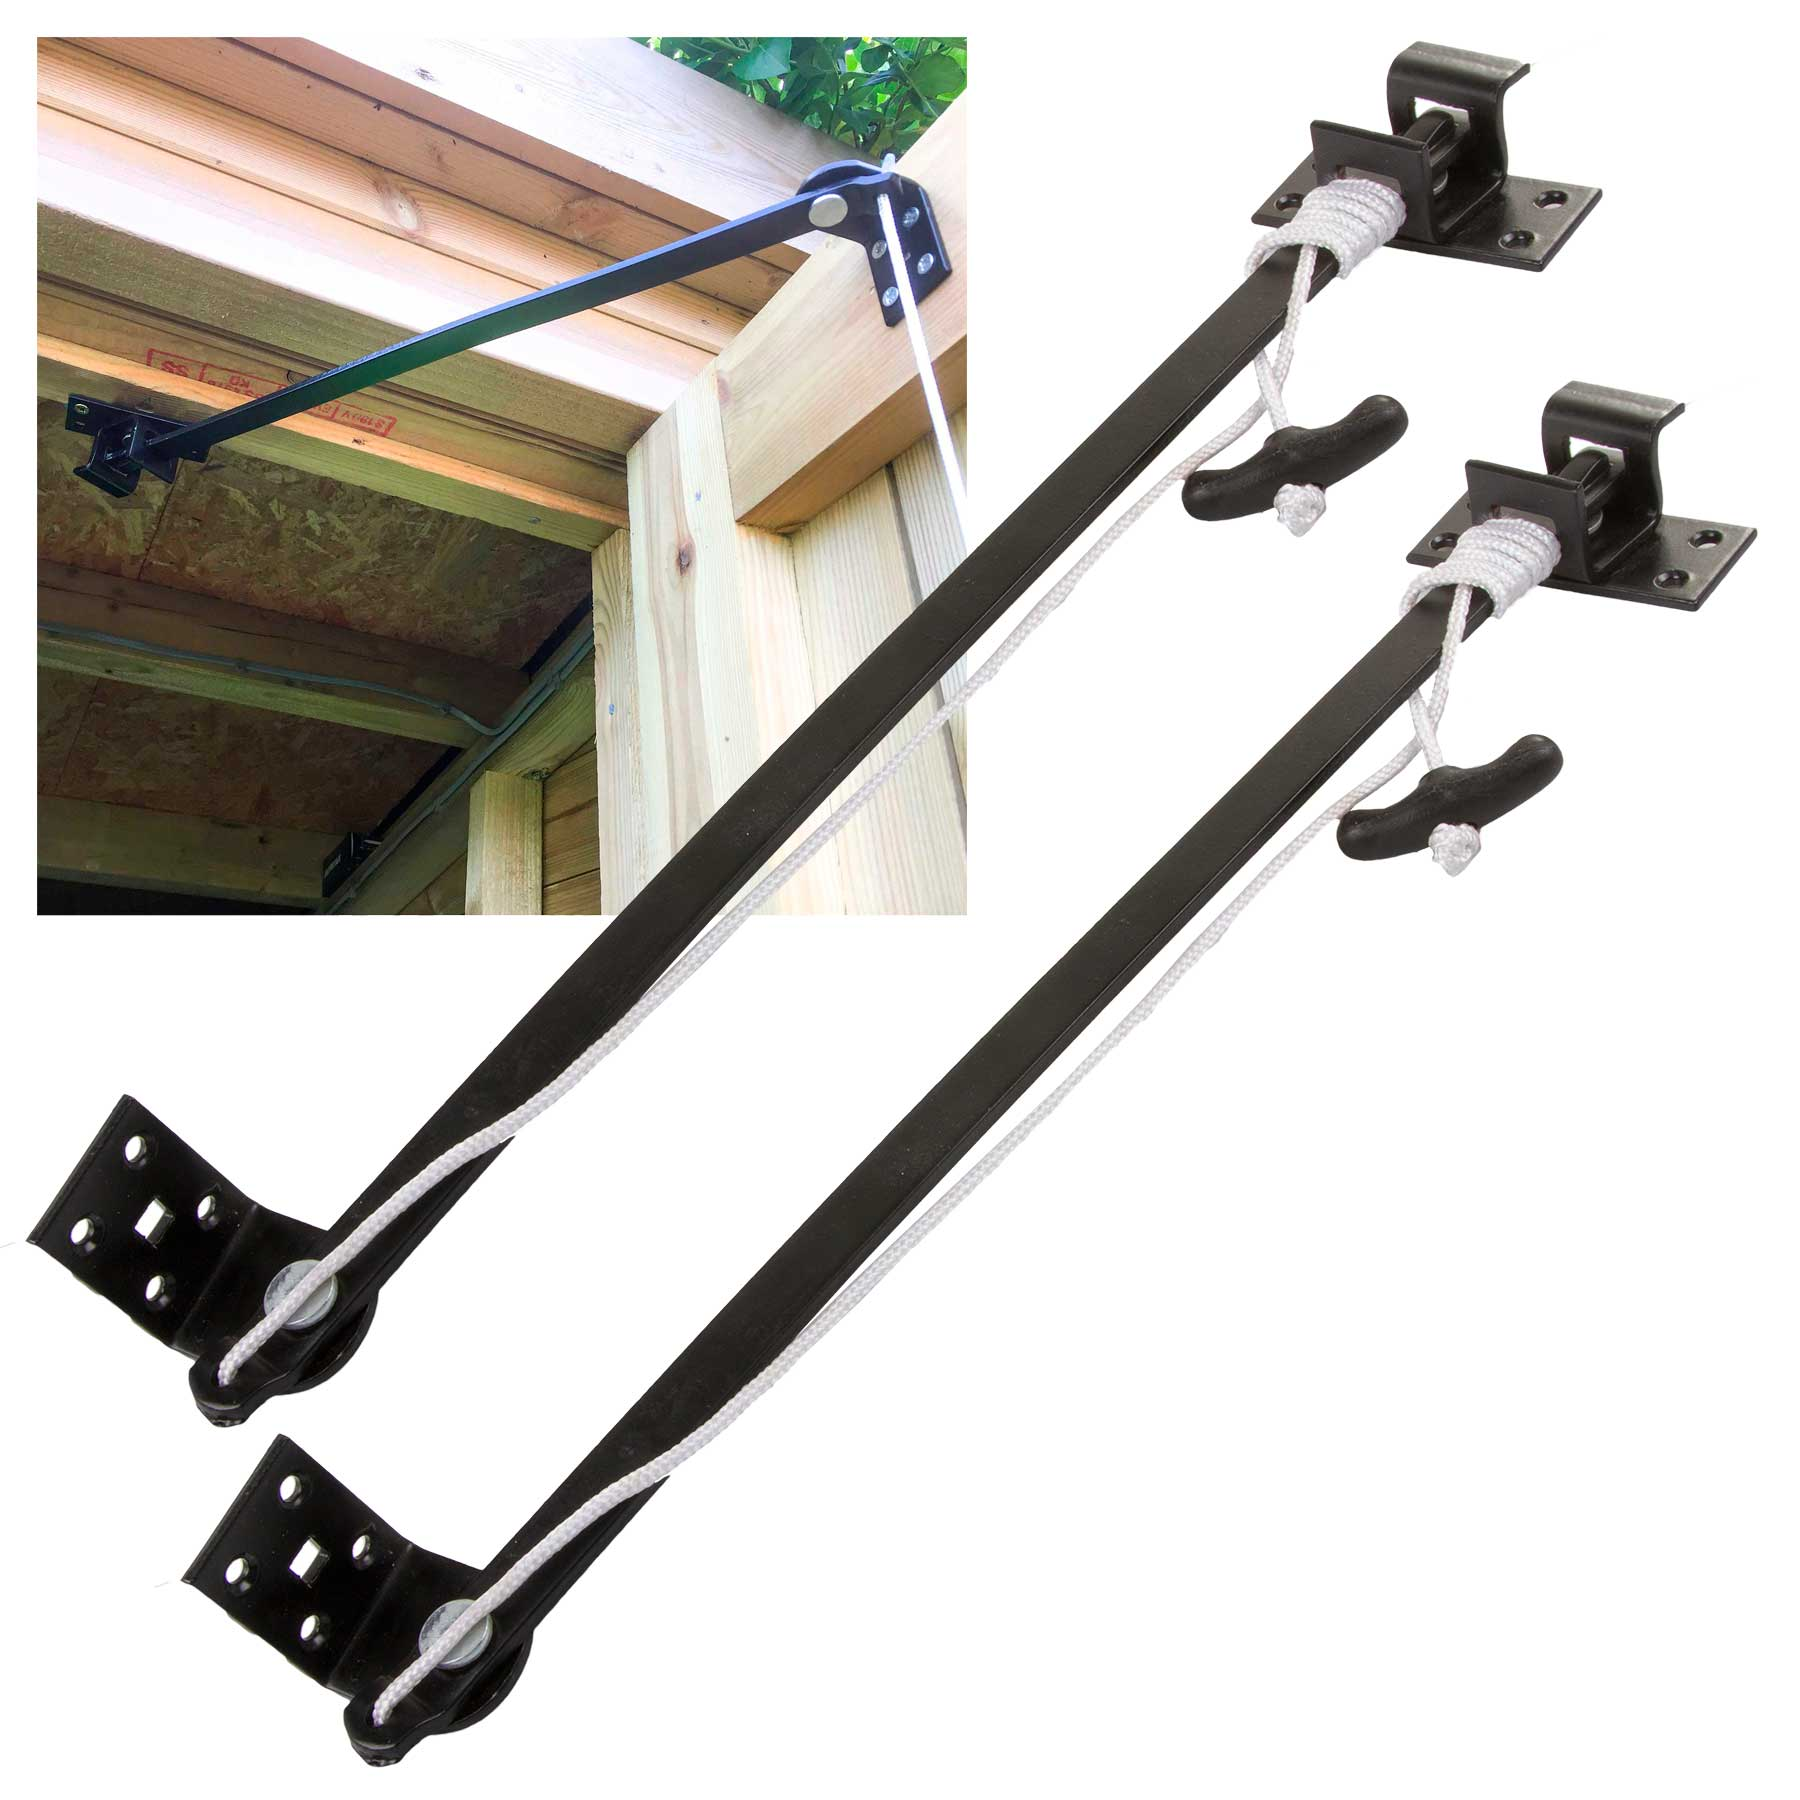 an holder out catch more rv stretched broken holders or entry door replacing no with metal